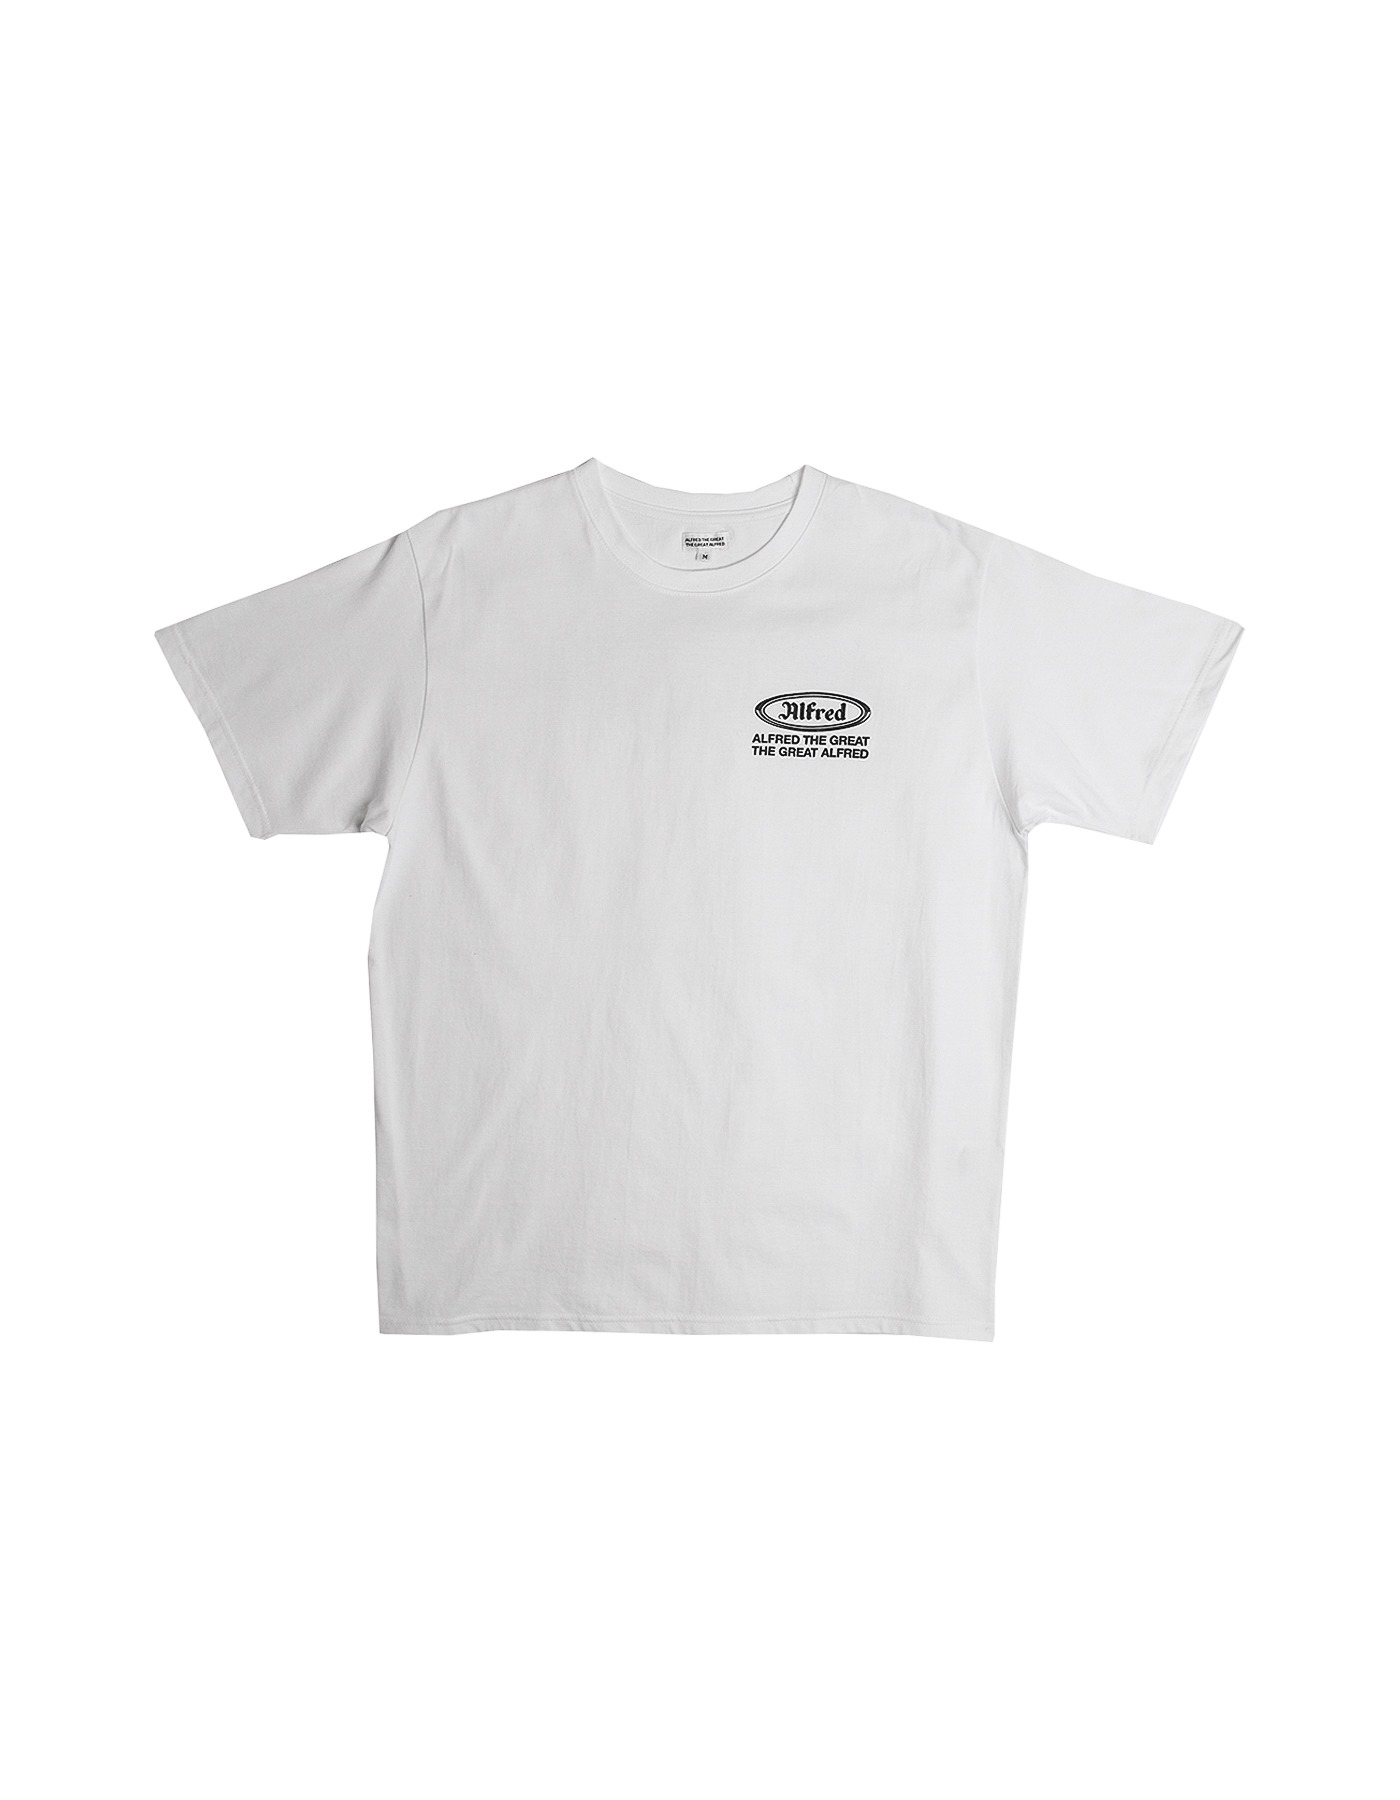 FRED OG T-SHIRTS / WHITE